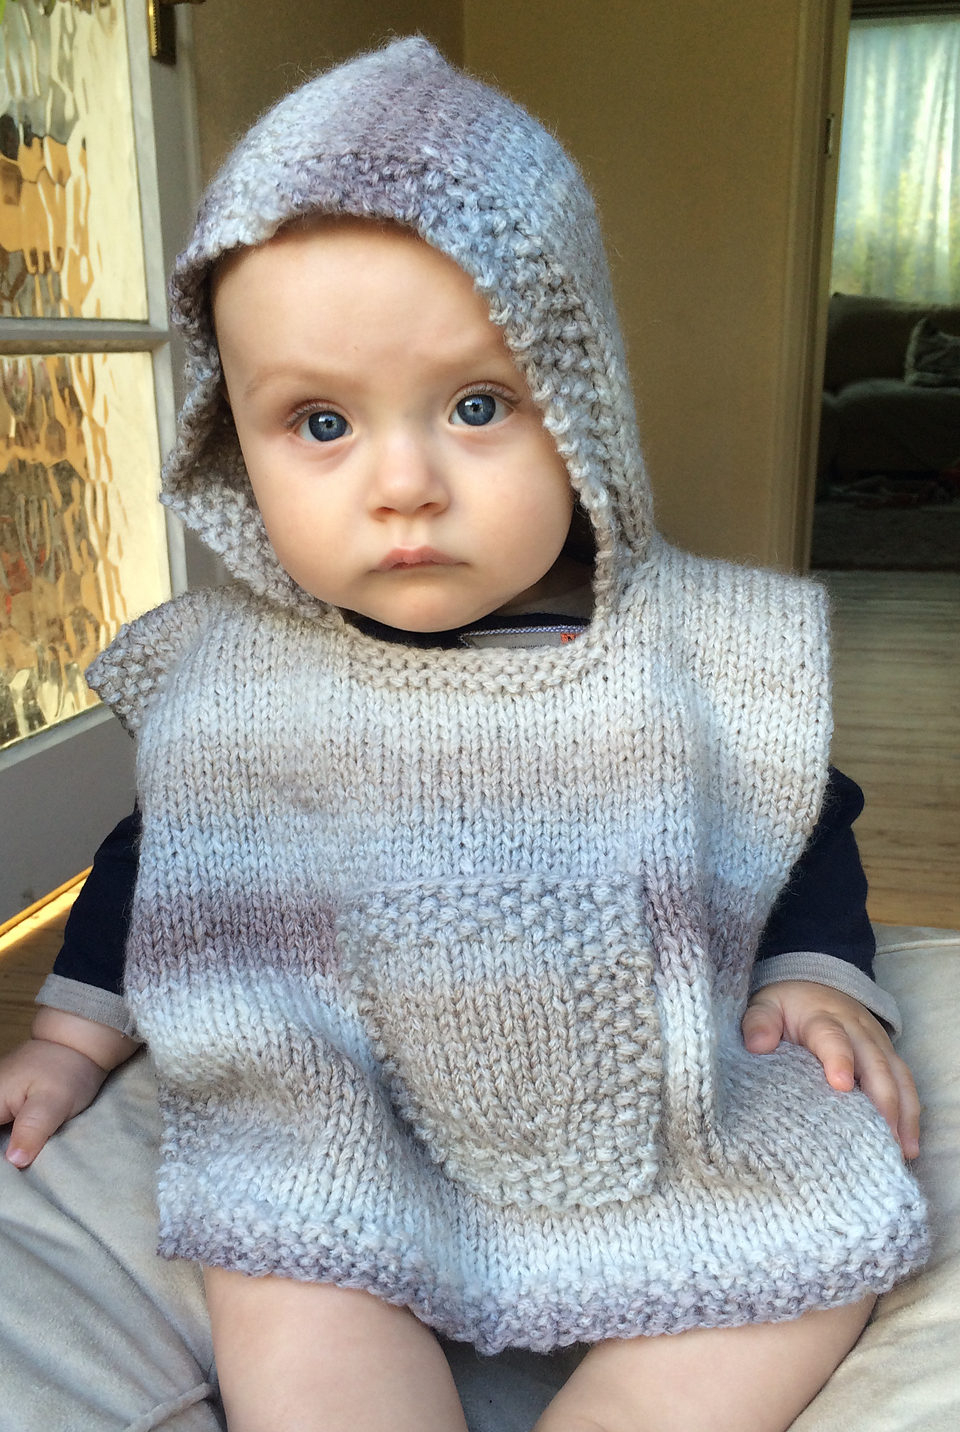 Free Knitting Patterns For Boys Ponchos For Babies And Children In The Loop Knitting